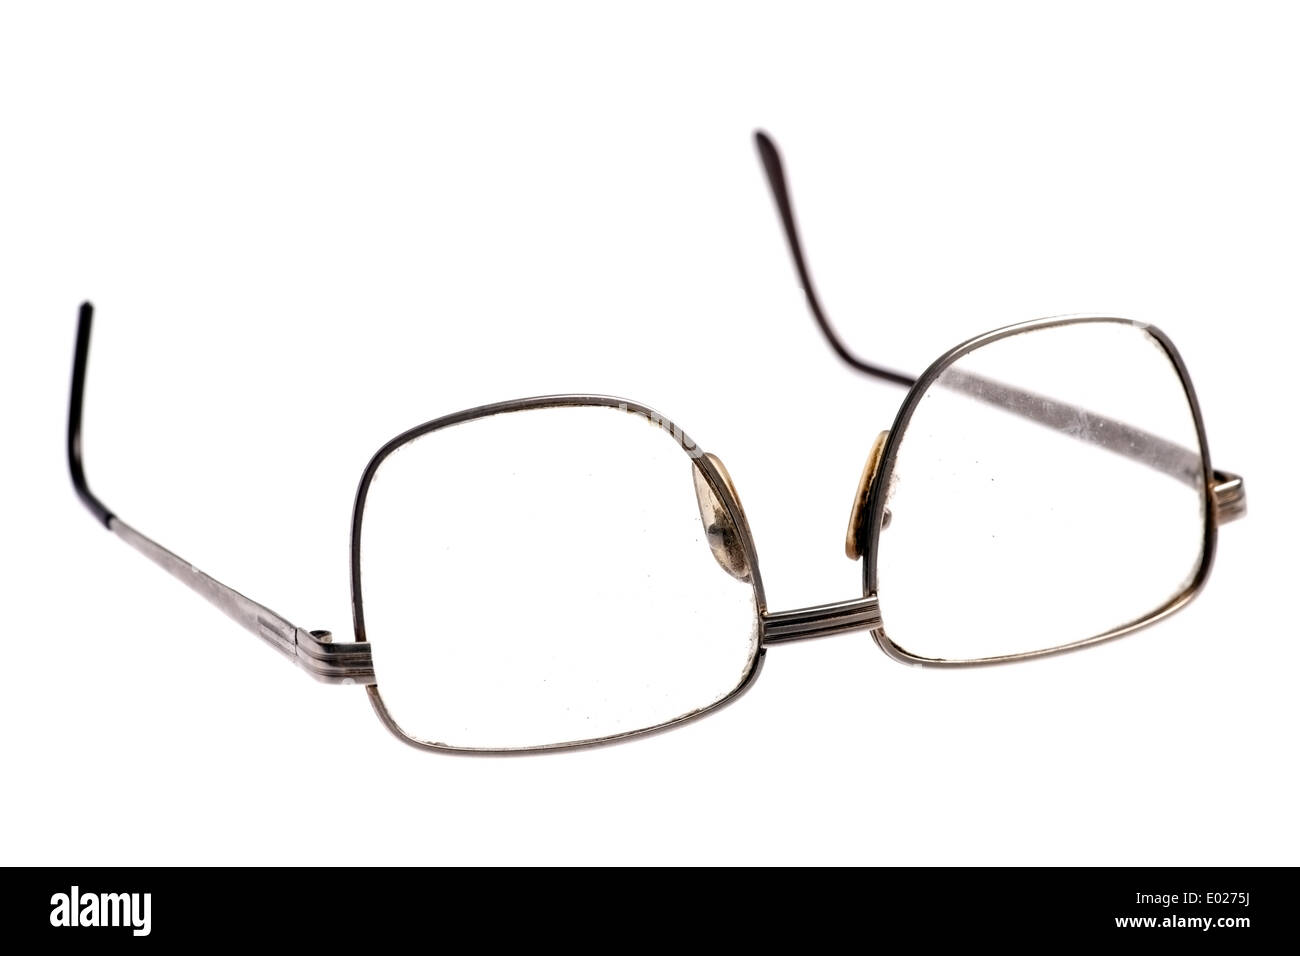 29b50fad5fd9 A pair of used glasses